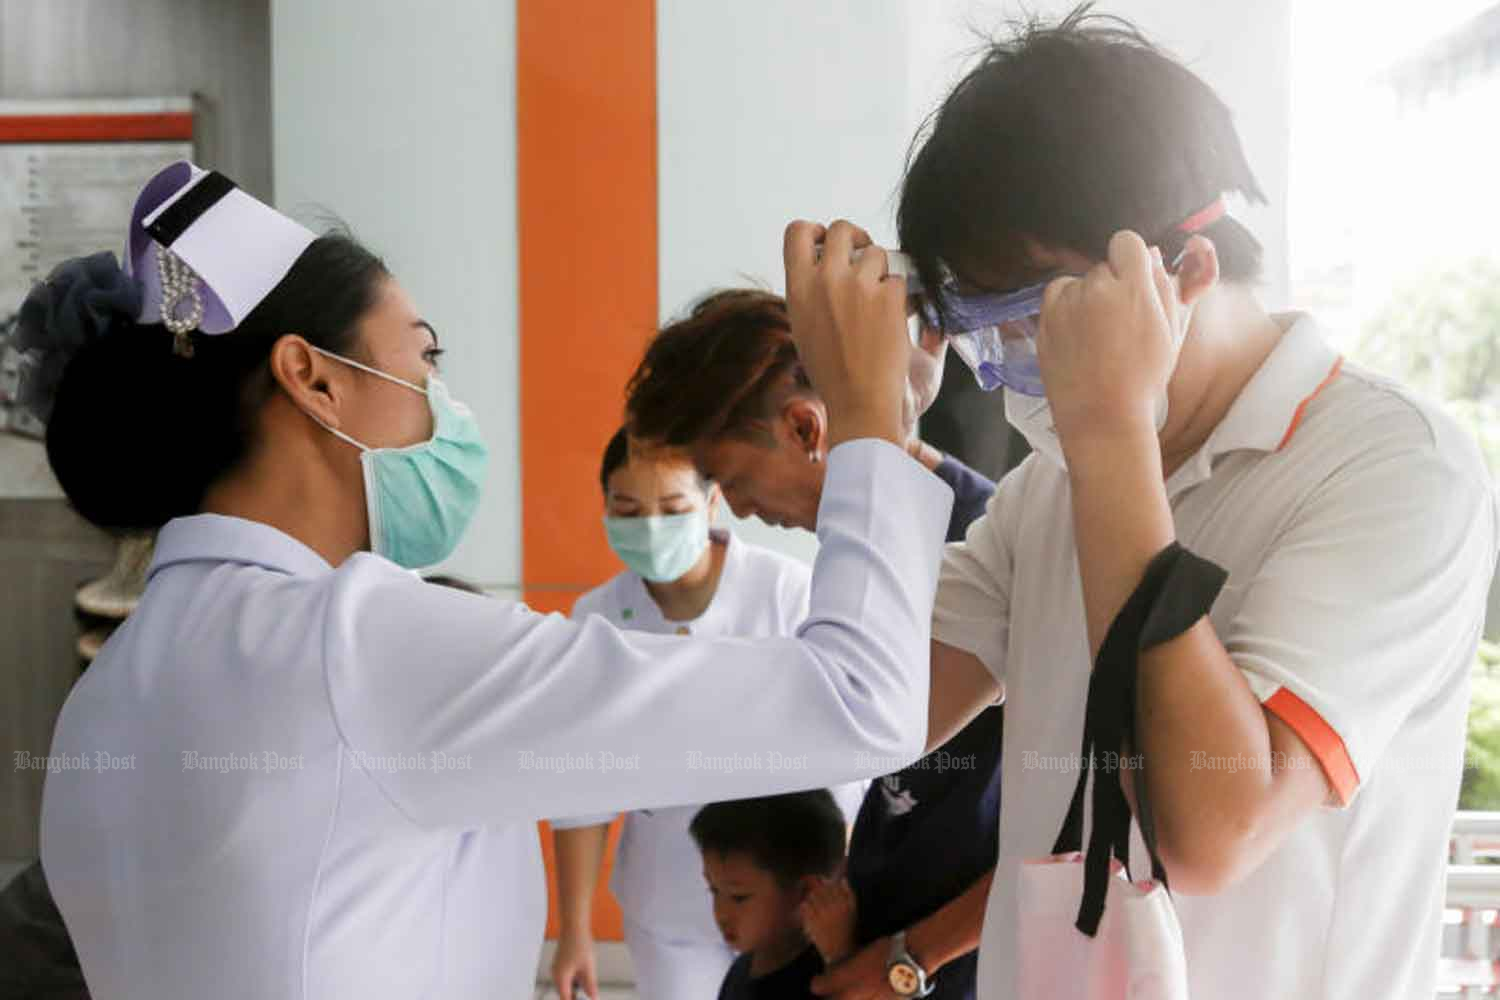 Nurses check the body temperature of people arriving at King Mongkut's Institute of Technology North Bangkok on Wednesday, looking for signs of novel coronavirus infection. (Photo: Pattarapong Chatpattarasill)